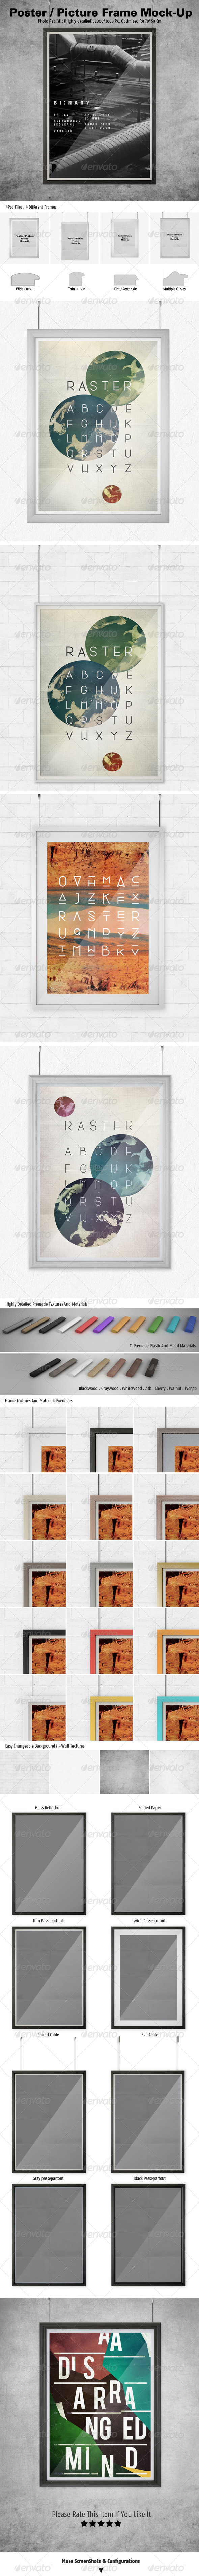 GraphicRiver Poster Picture Frame Mock-ups 5012419